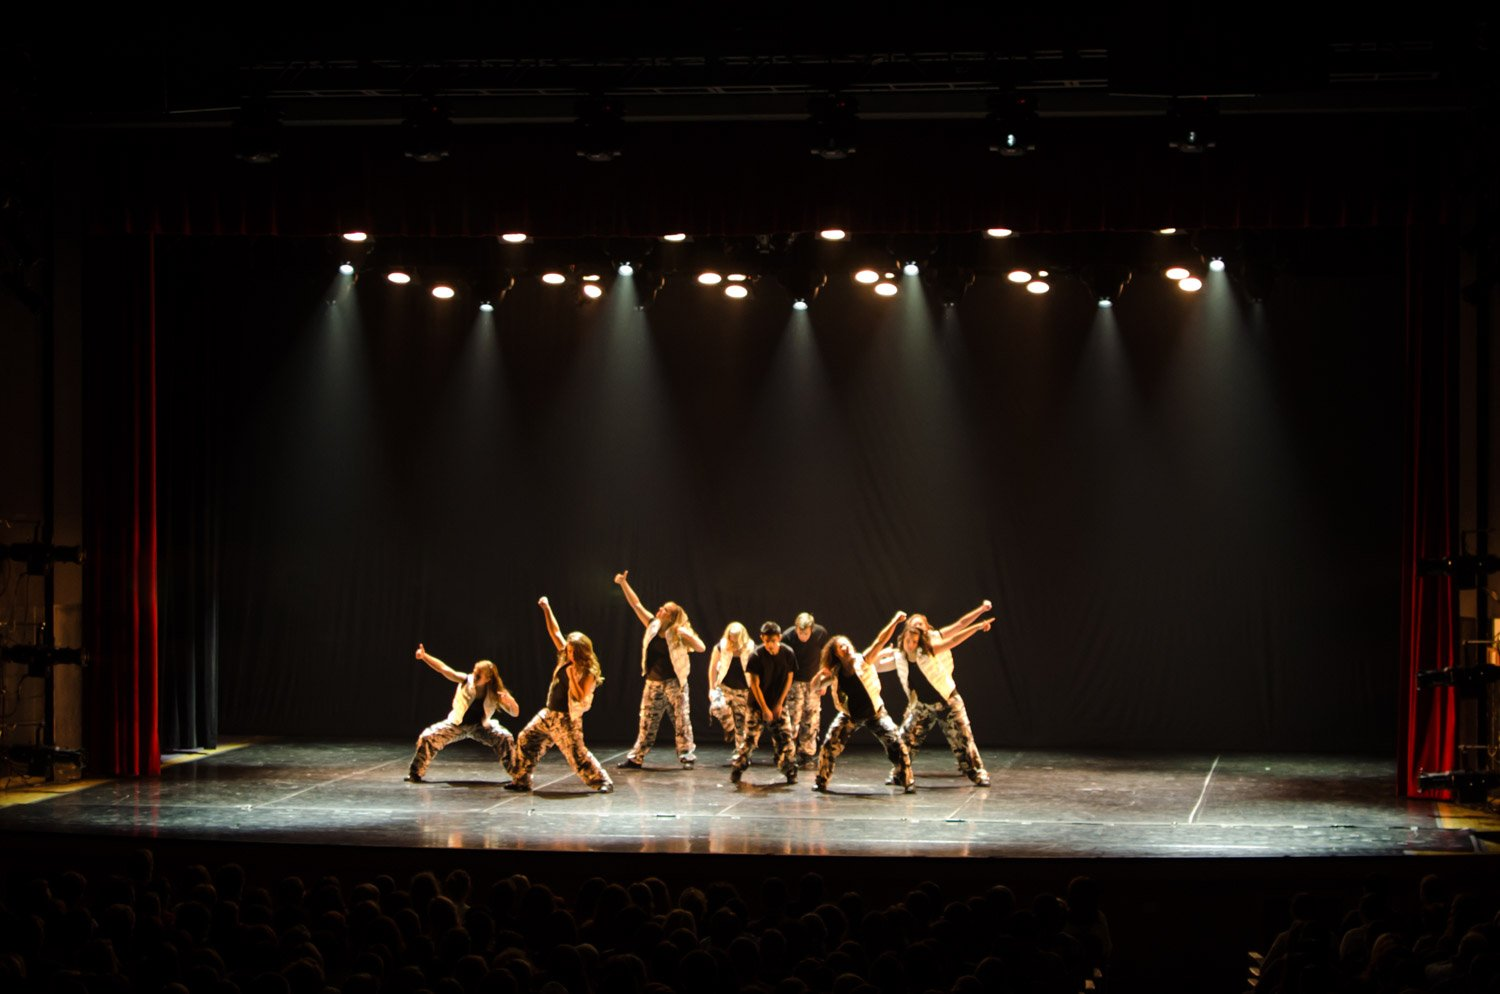 BYUI Extravadance Fall 2012